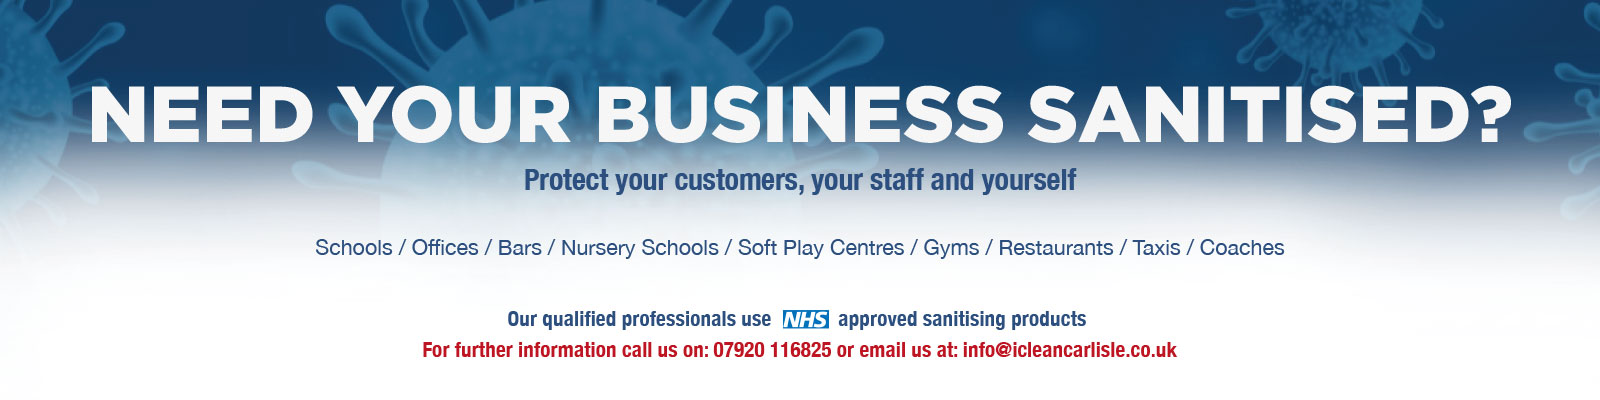 Need your business sanitised?